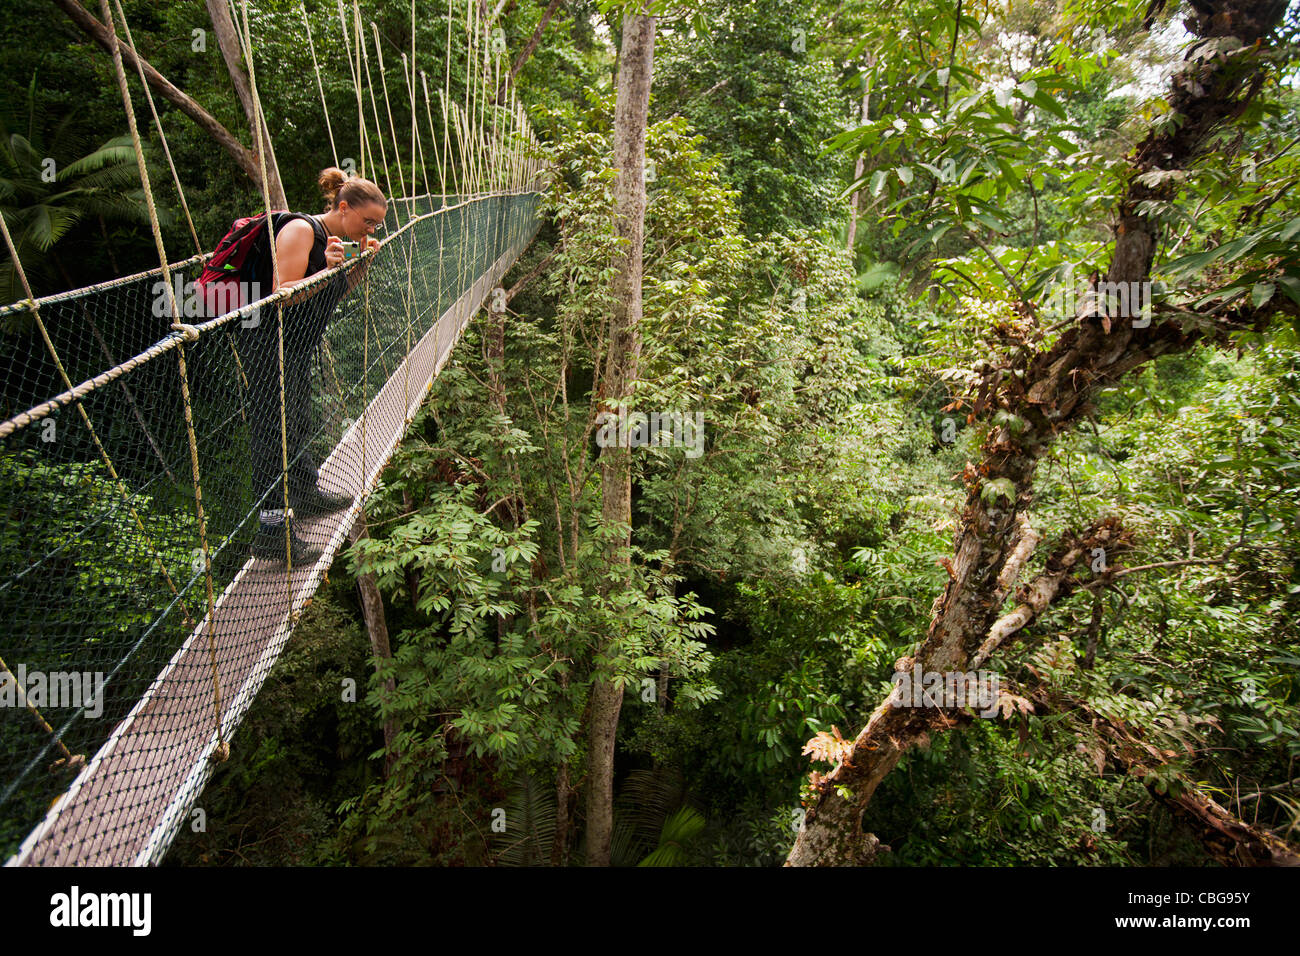 A woman looking down from a tree canopy walkway, Teman Negara National Park, Malaysia - Stock Image